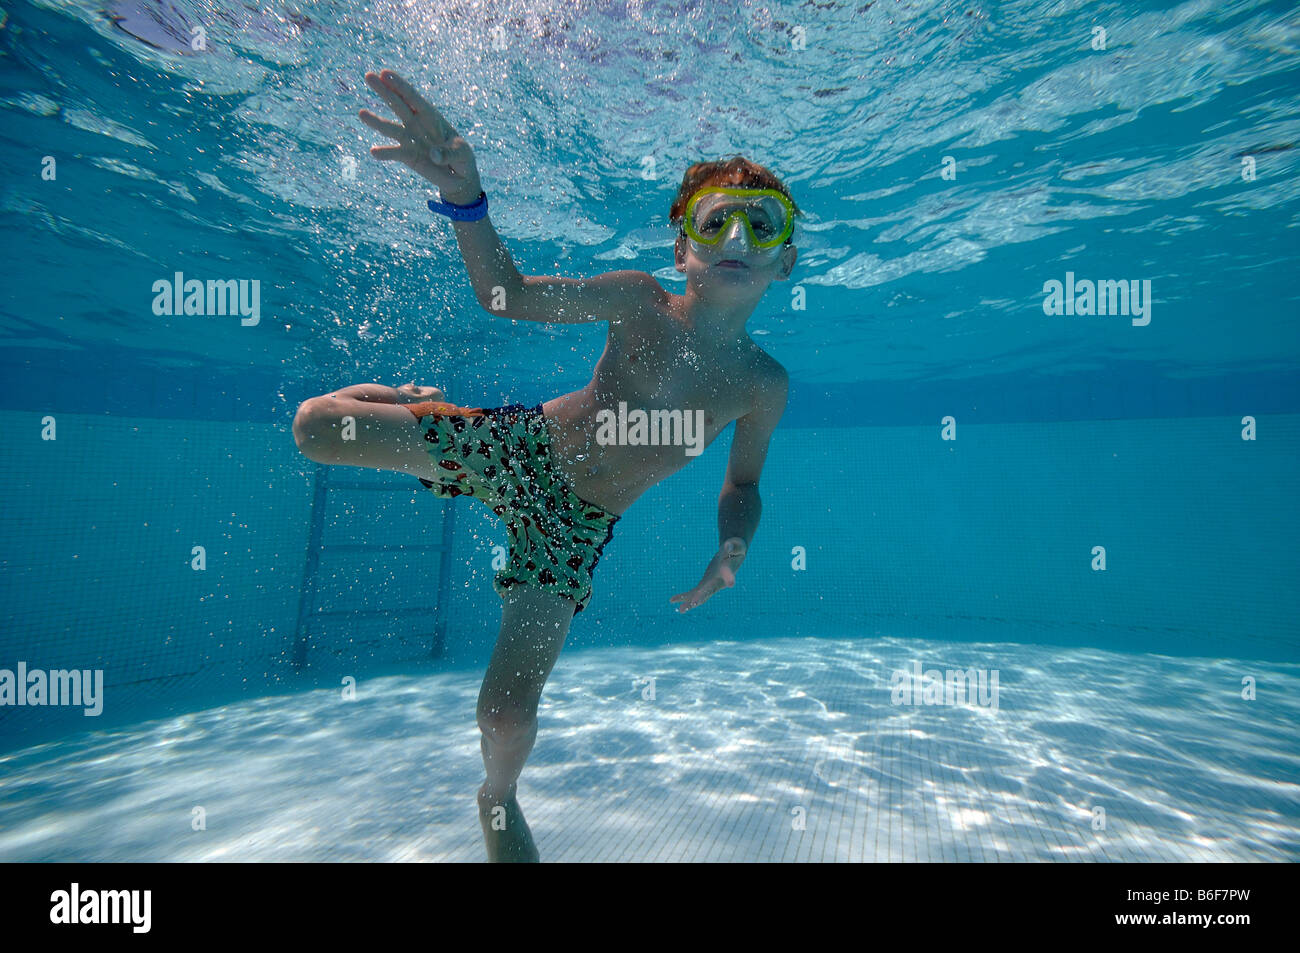 6 Year Old Boy Wearing Diving Goggles Diving In A Swimming Pool Stock Photo 21233713 Alamy